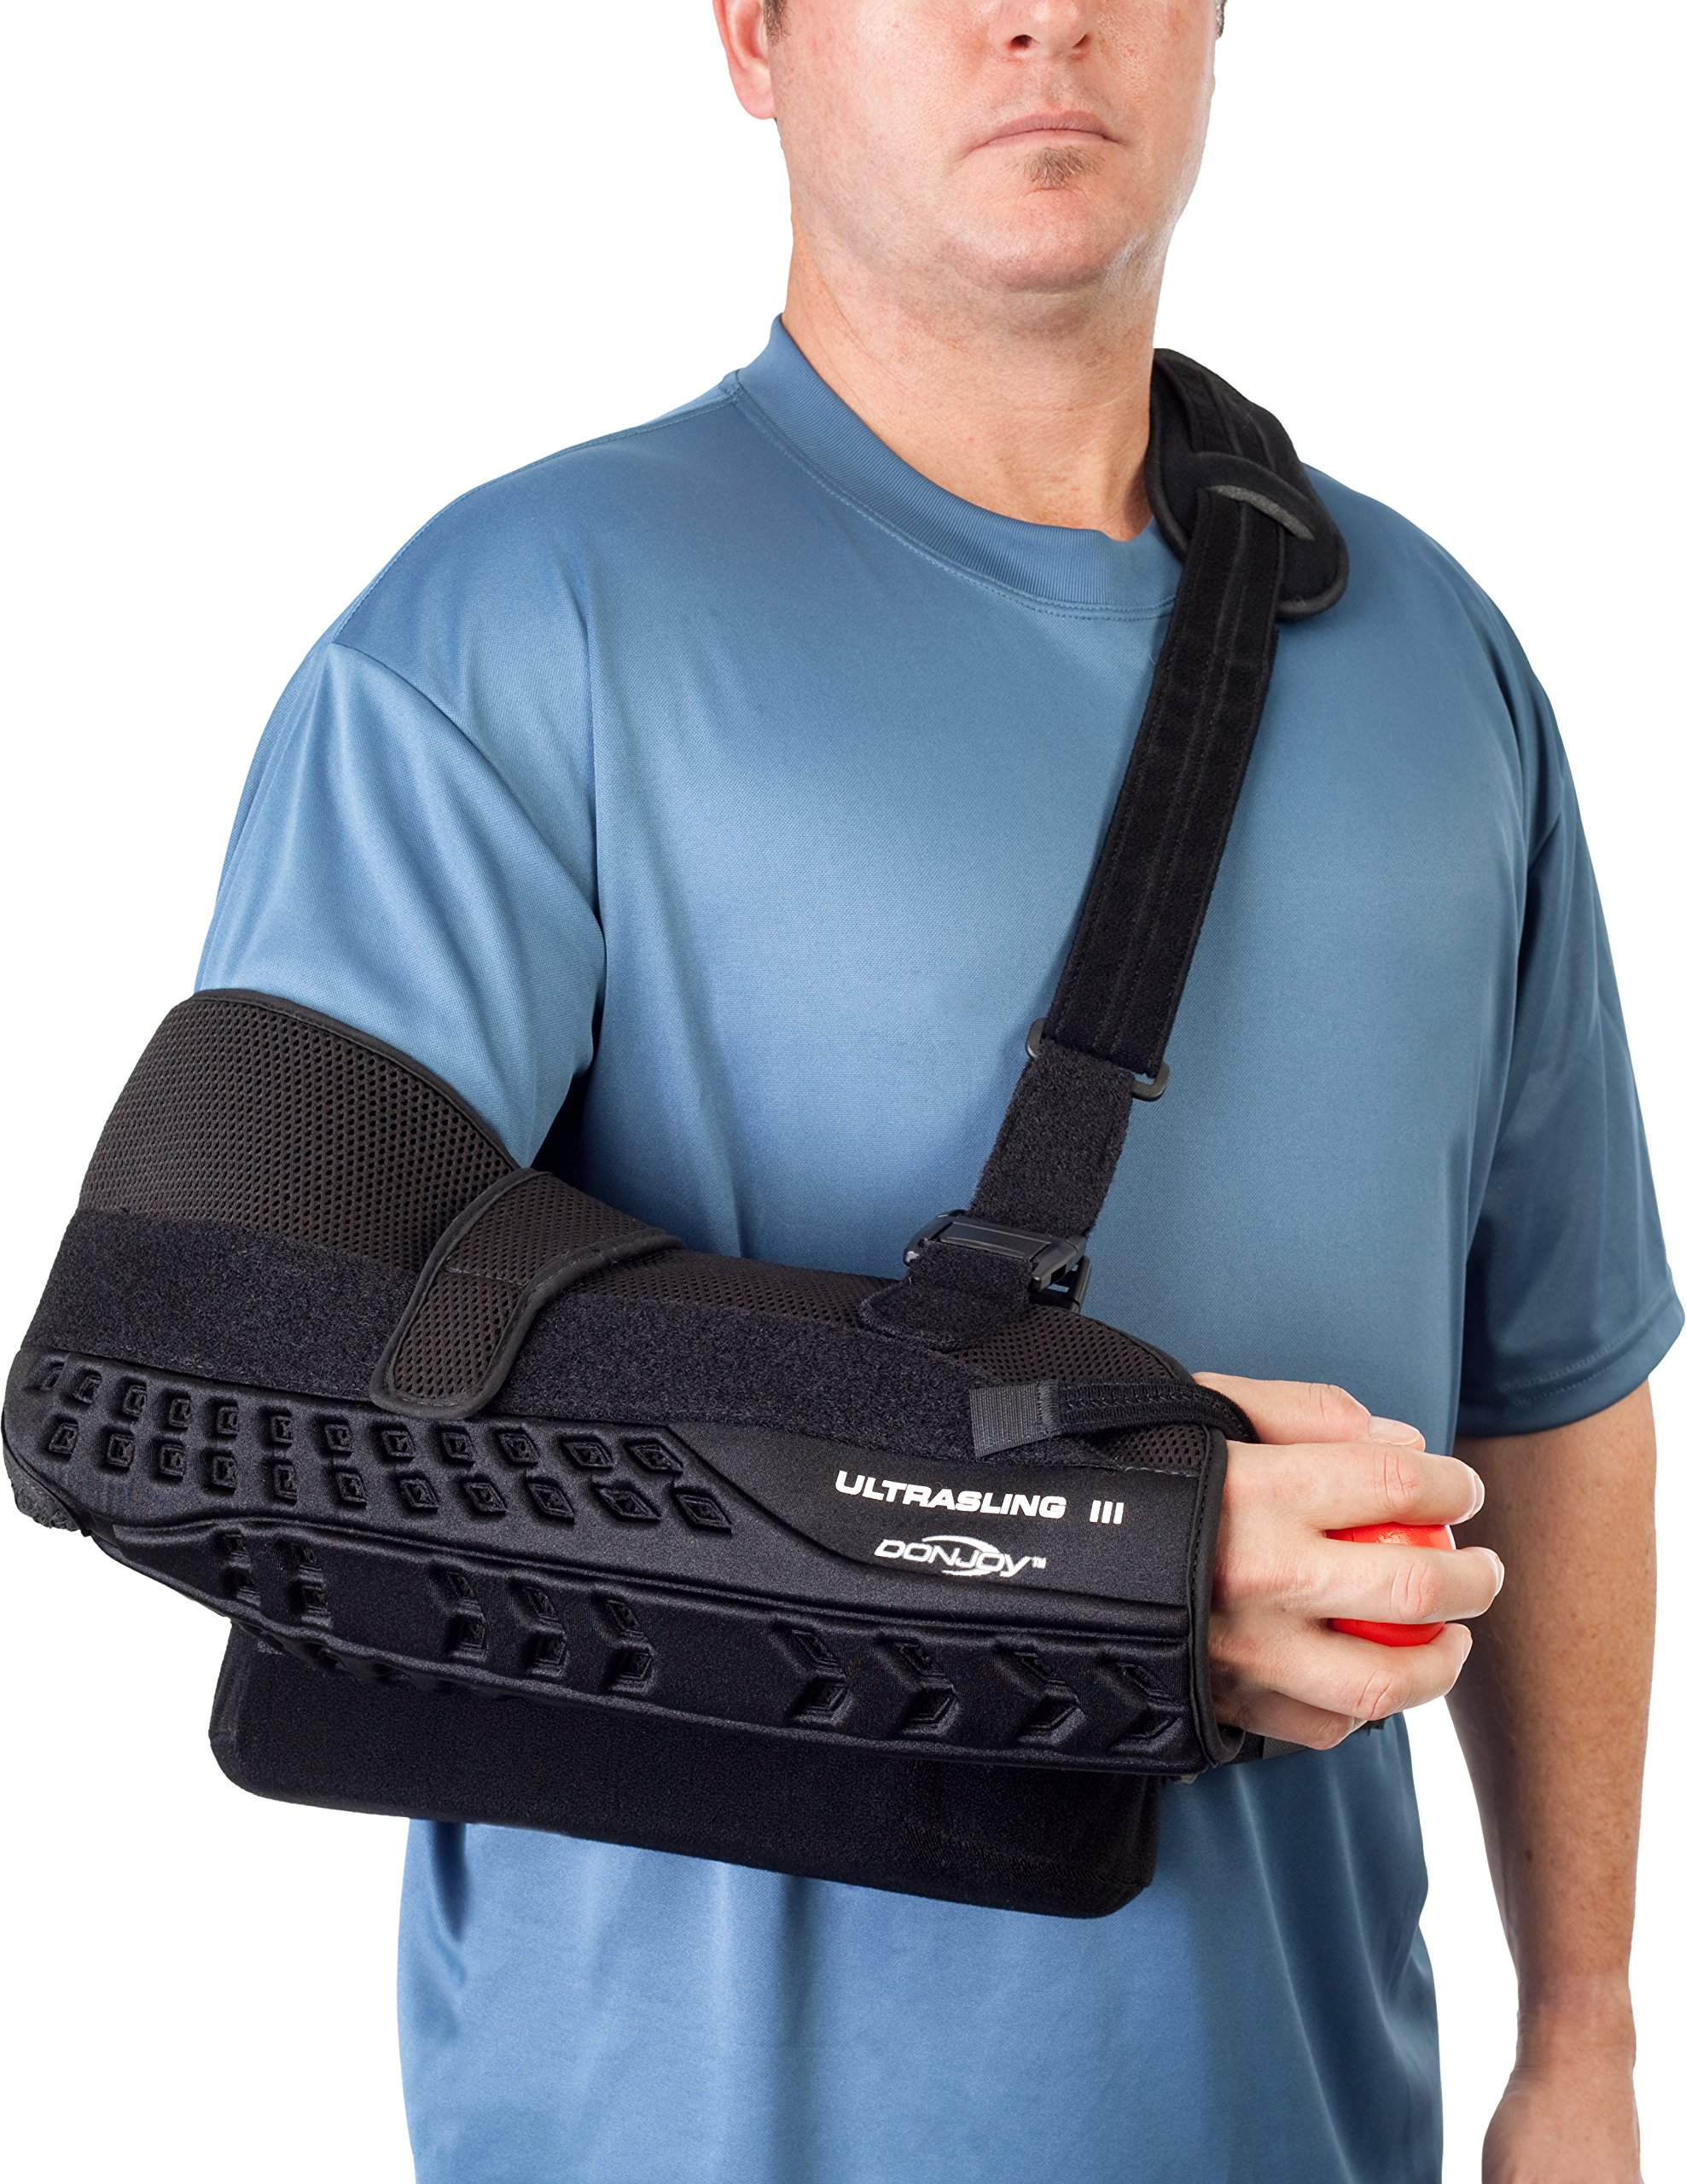 DonJoy UltraSling III Shoulder Support Sling, Large